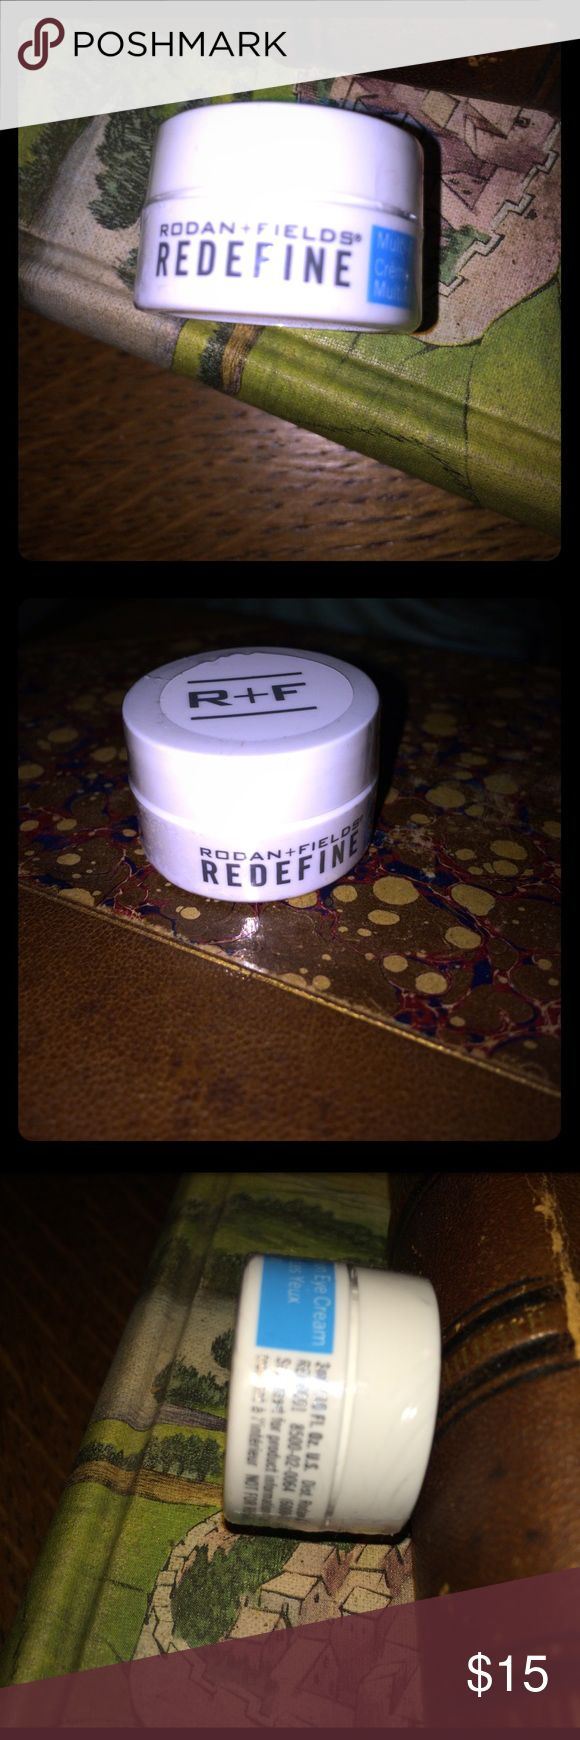 Rodan Fields Redefine Mini Eye Cream 3ml 10oz Rodan Fields Redefine Mini Eye Cream 3ml 10oz.  New, sealed.   REDEFINE Mini Multi-Function Eye Cream combines powerful peptides to minimize the appearance of crow's-feet, helps reduce the appearance of both puffiness and dark under eye circles while special optical diffusers noticeably brighten the eye area. This formula is ideal for maintaining the delicate skin around the eyes. 3mL rodan fields Makeup